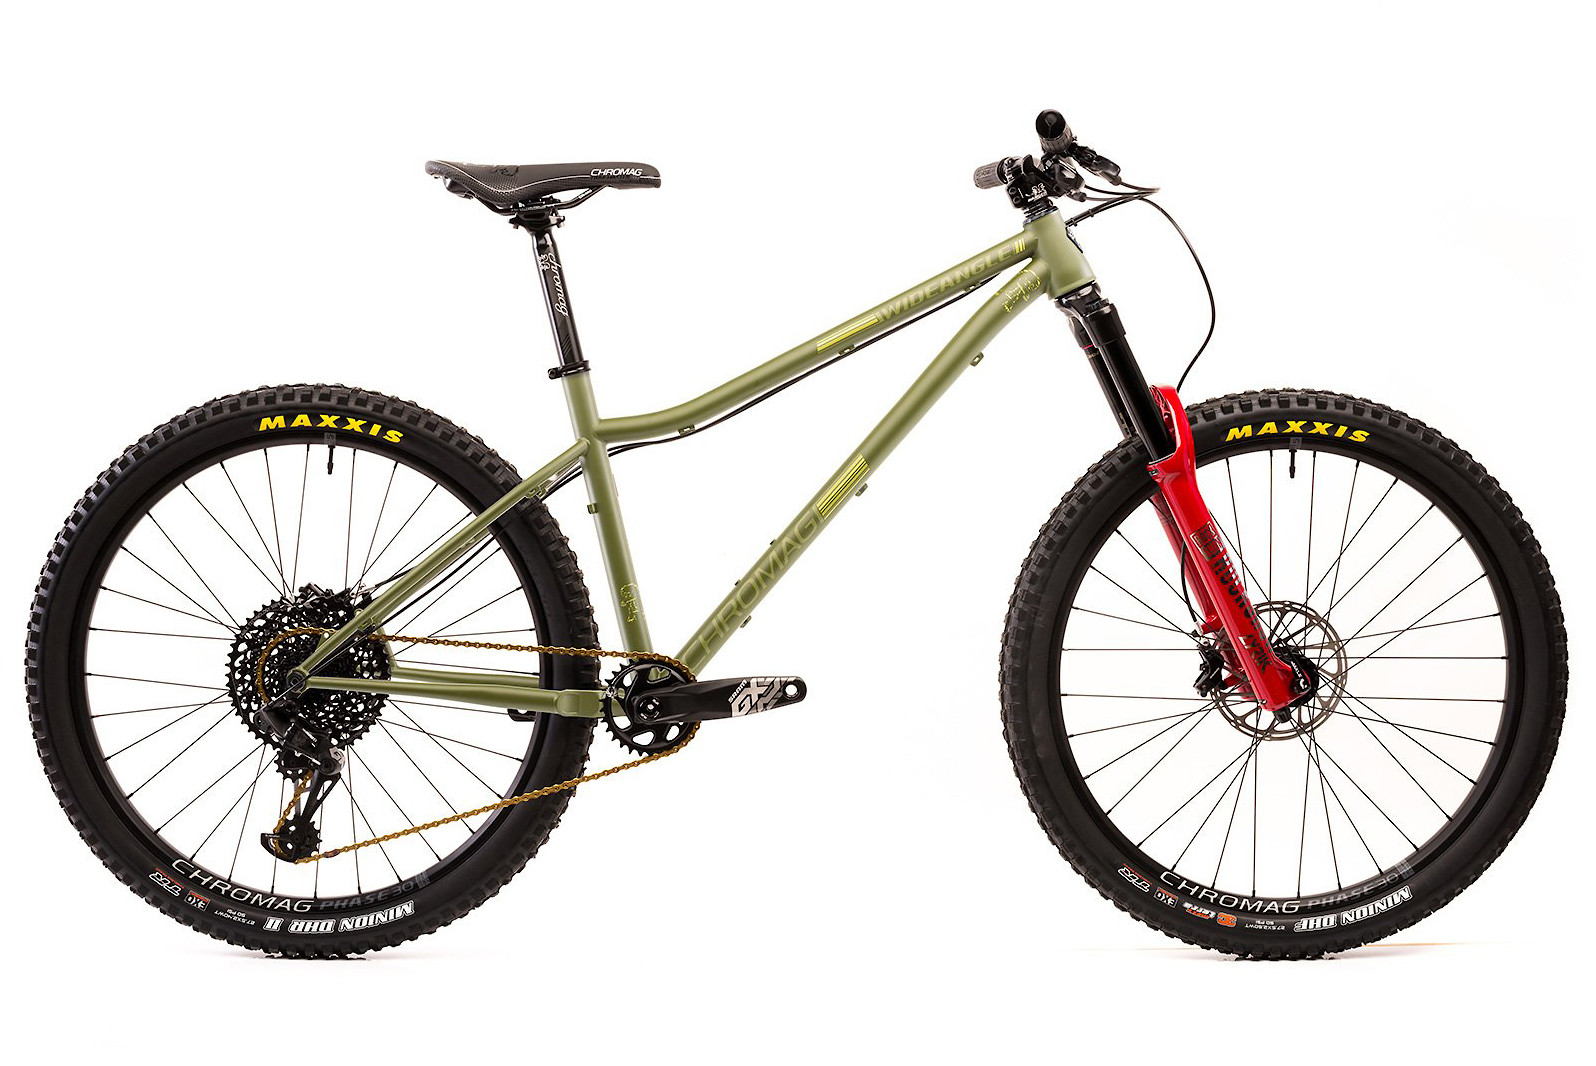 2019 Chromag Wideangle - 2019 Eagle GX build pictured